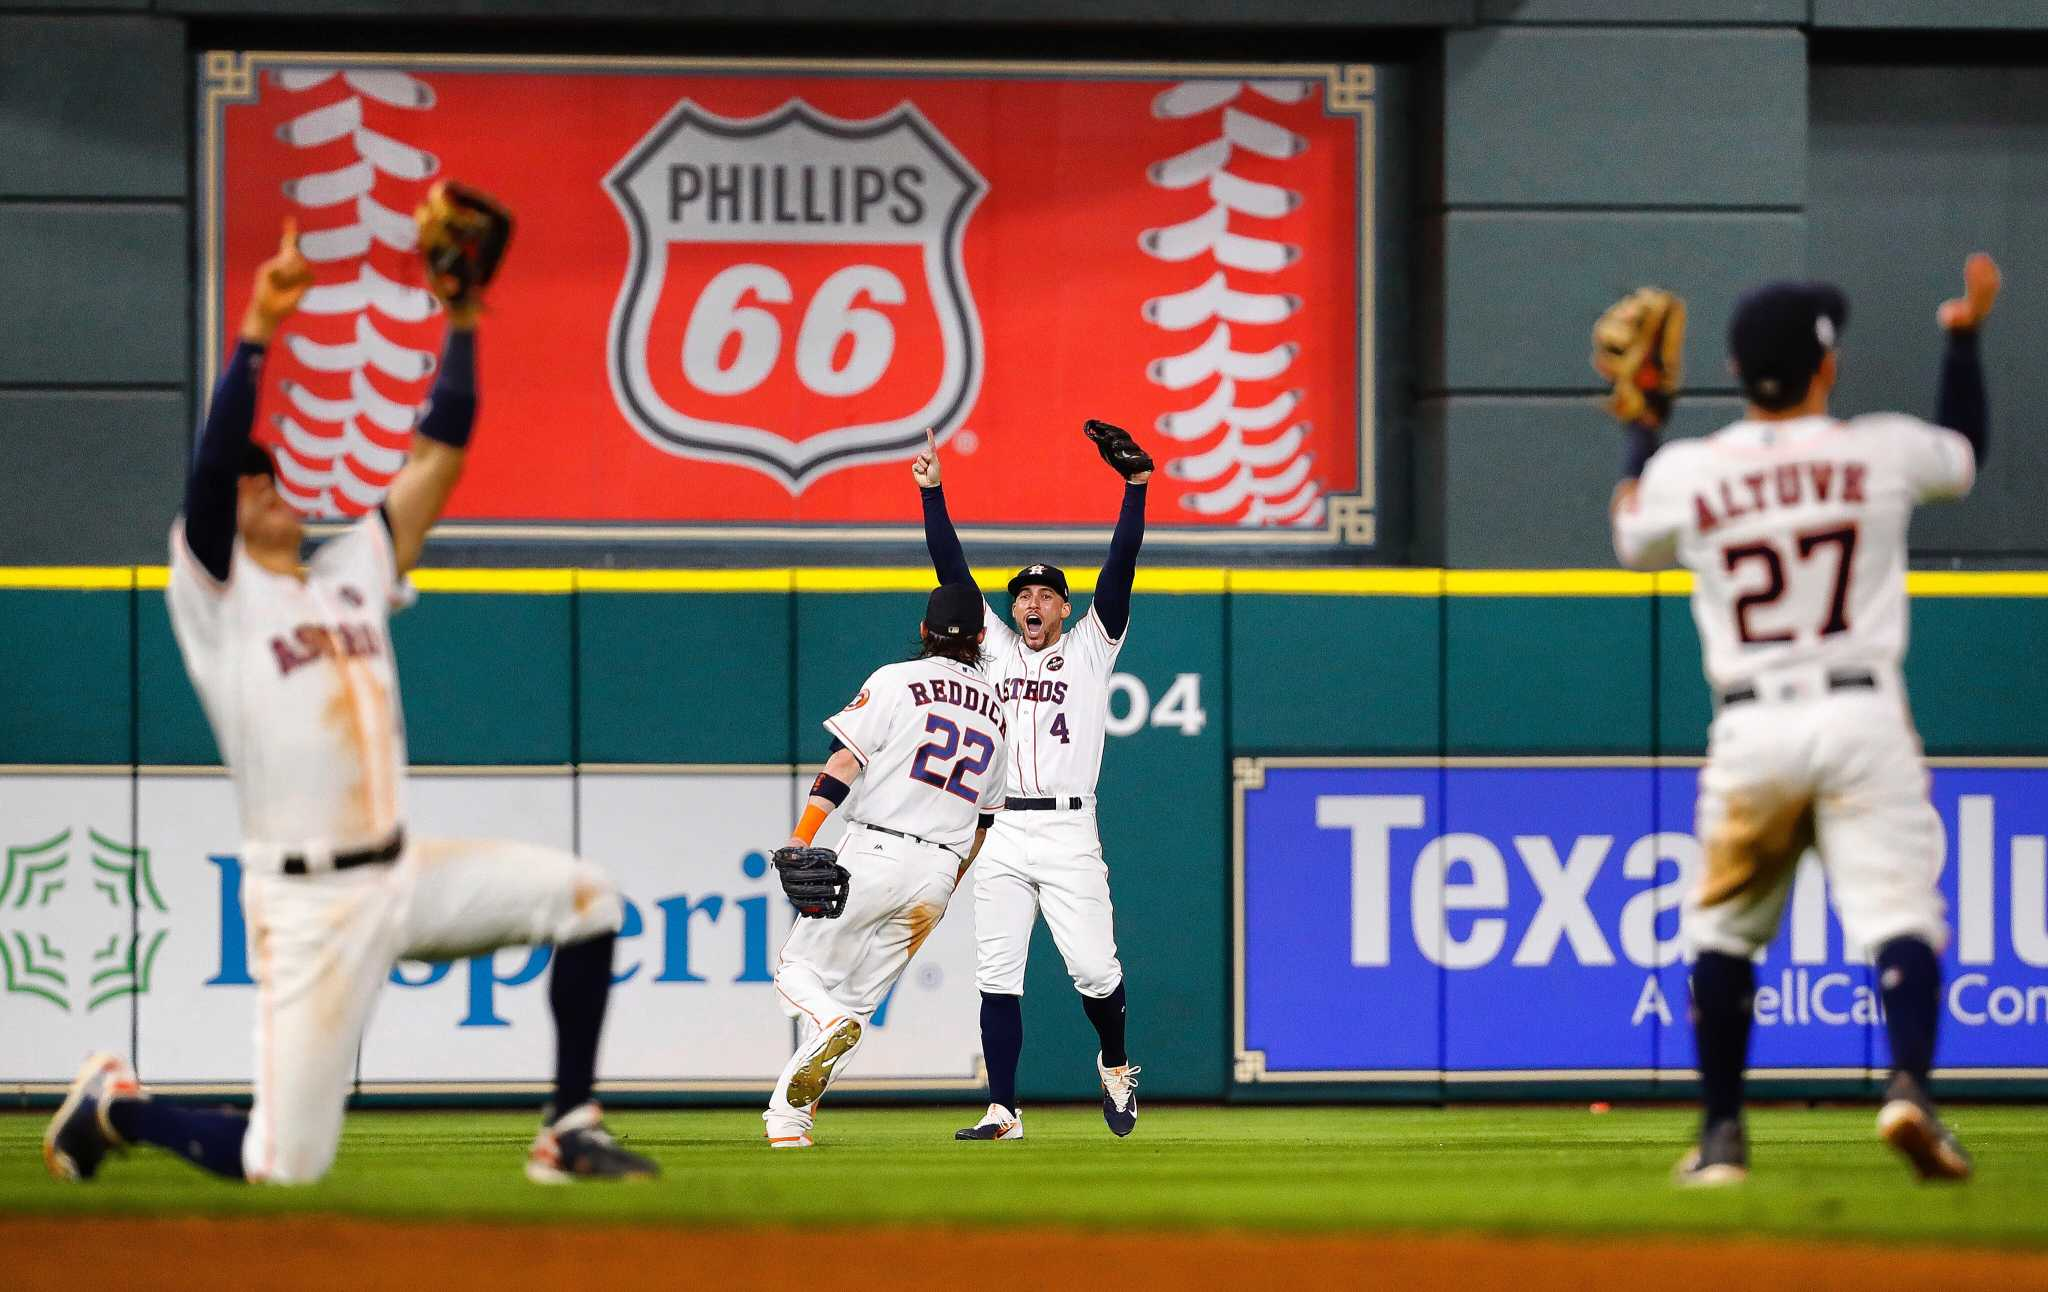 Minute Maid Park's most memorable: Game 7 of 2017 ALCS